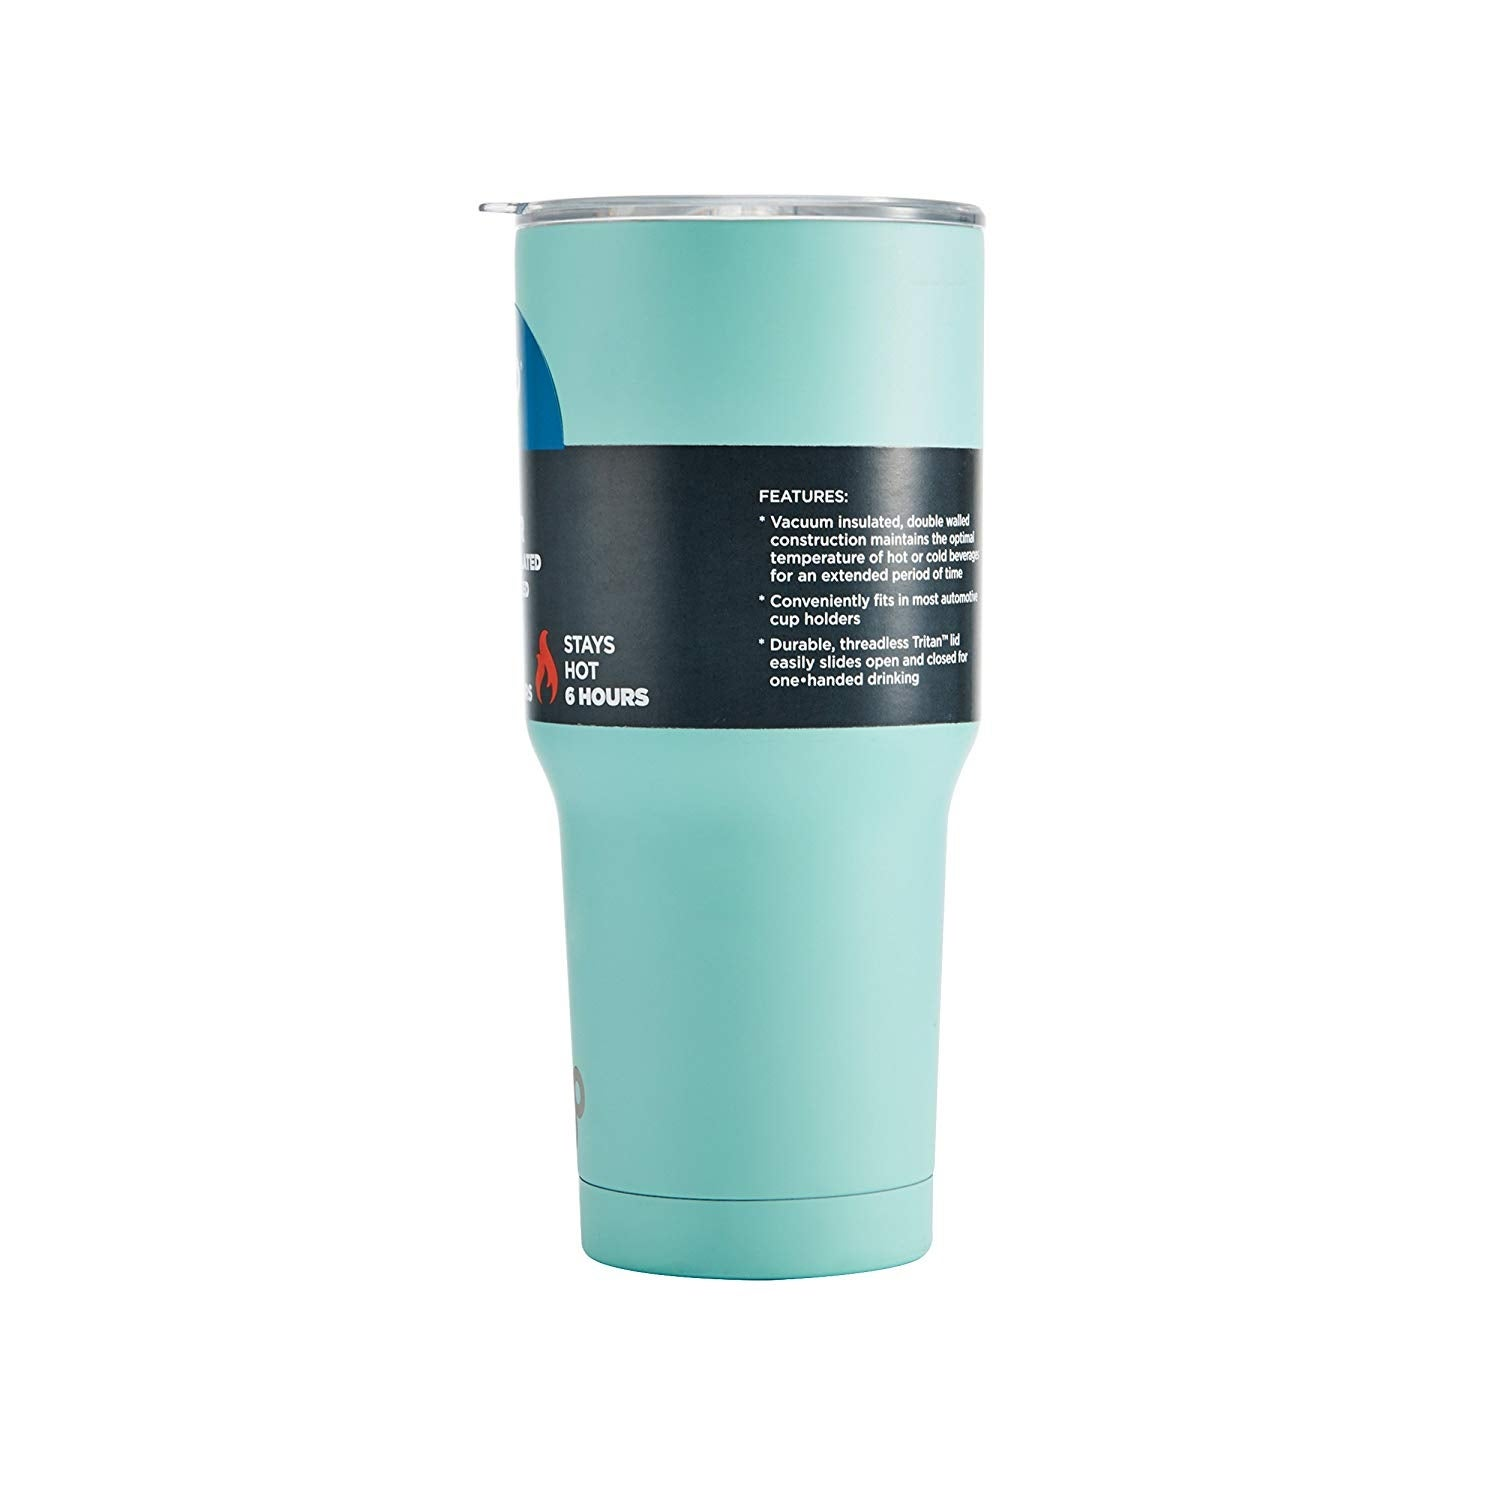 8c1ad7d8bd9 Shop BYO Double Wall Stainless Steel Vacuum Insulated Tumbler With Spill  Proof Durable Tritan Lid 30 Oz - Matte Aqua - Matte Aqua - Free Shipping On  Orders ...